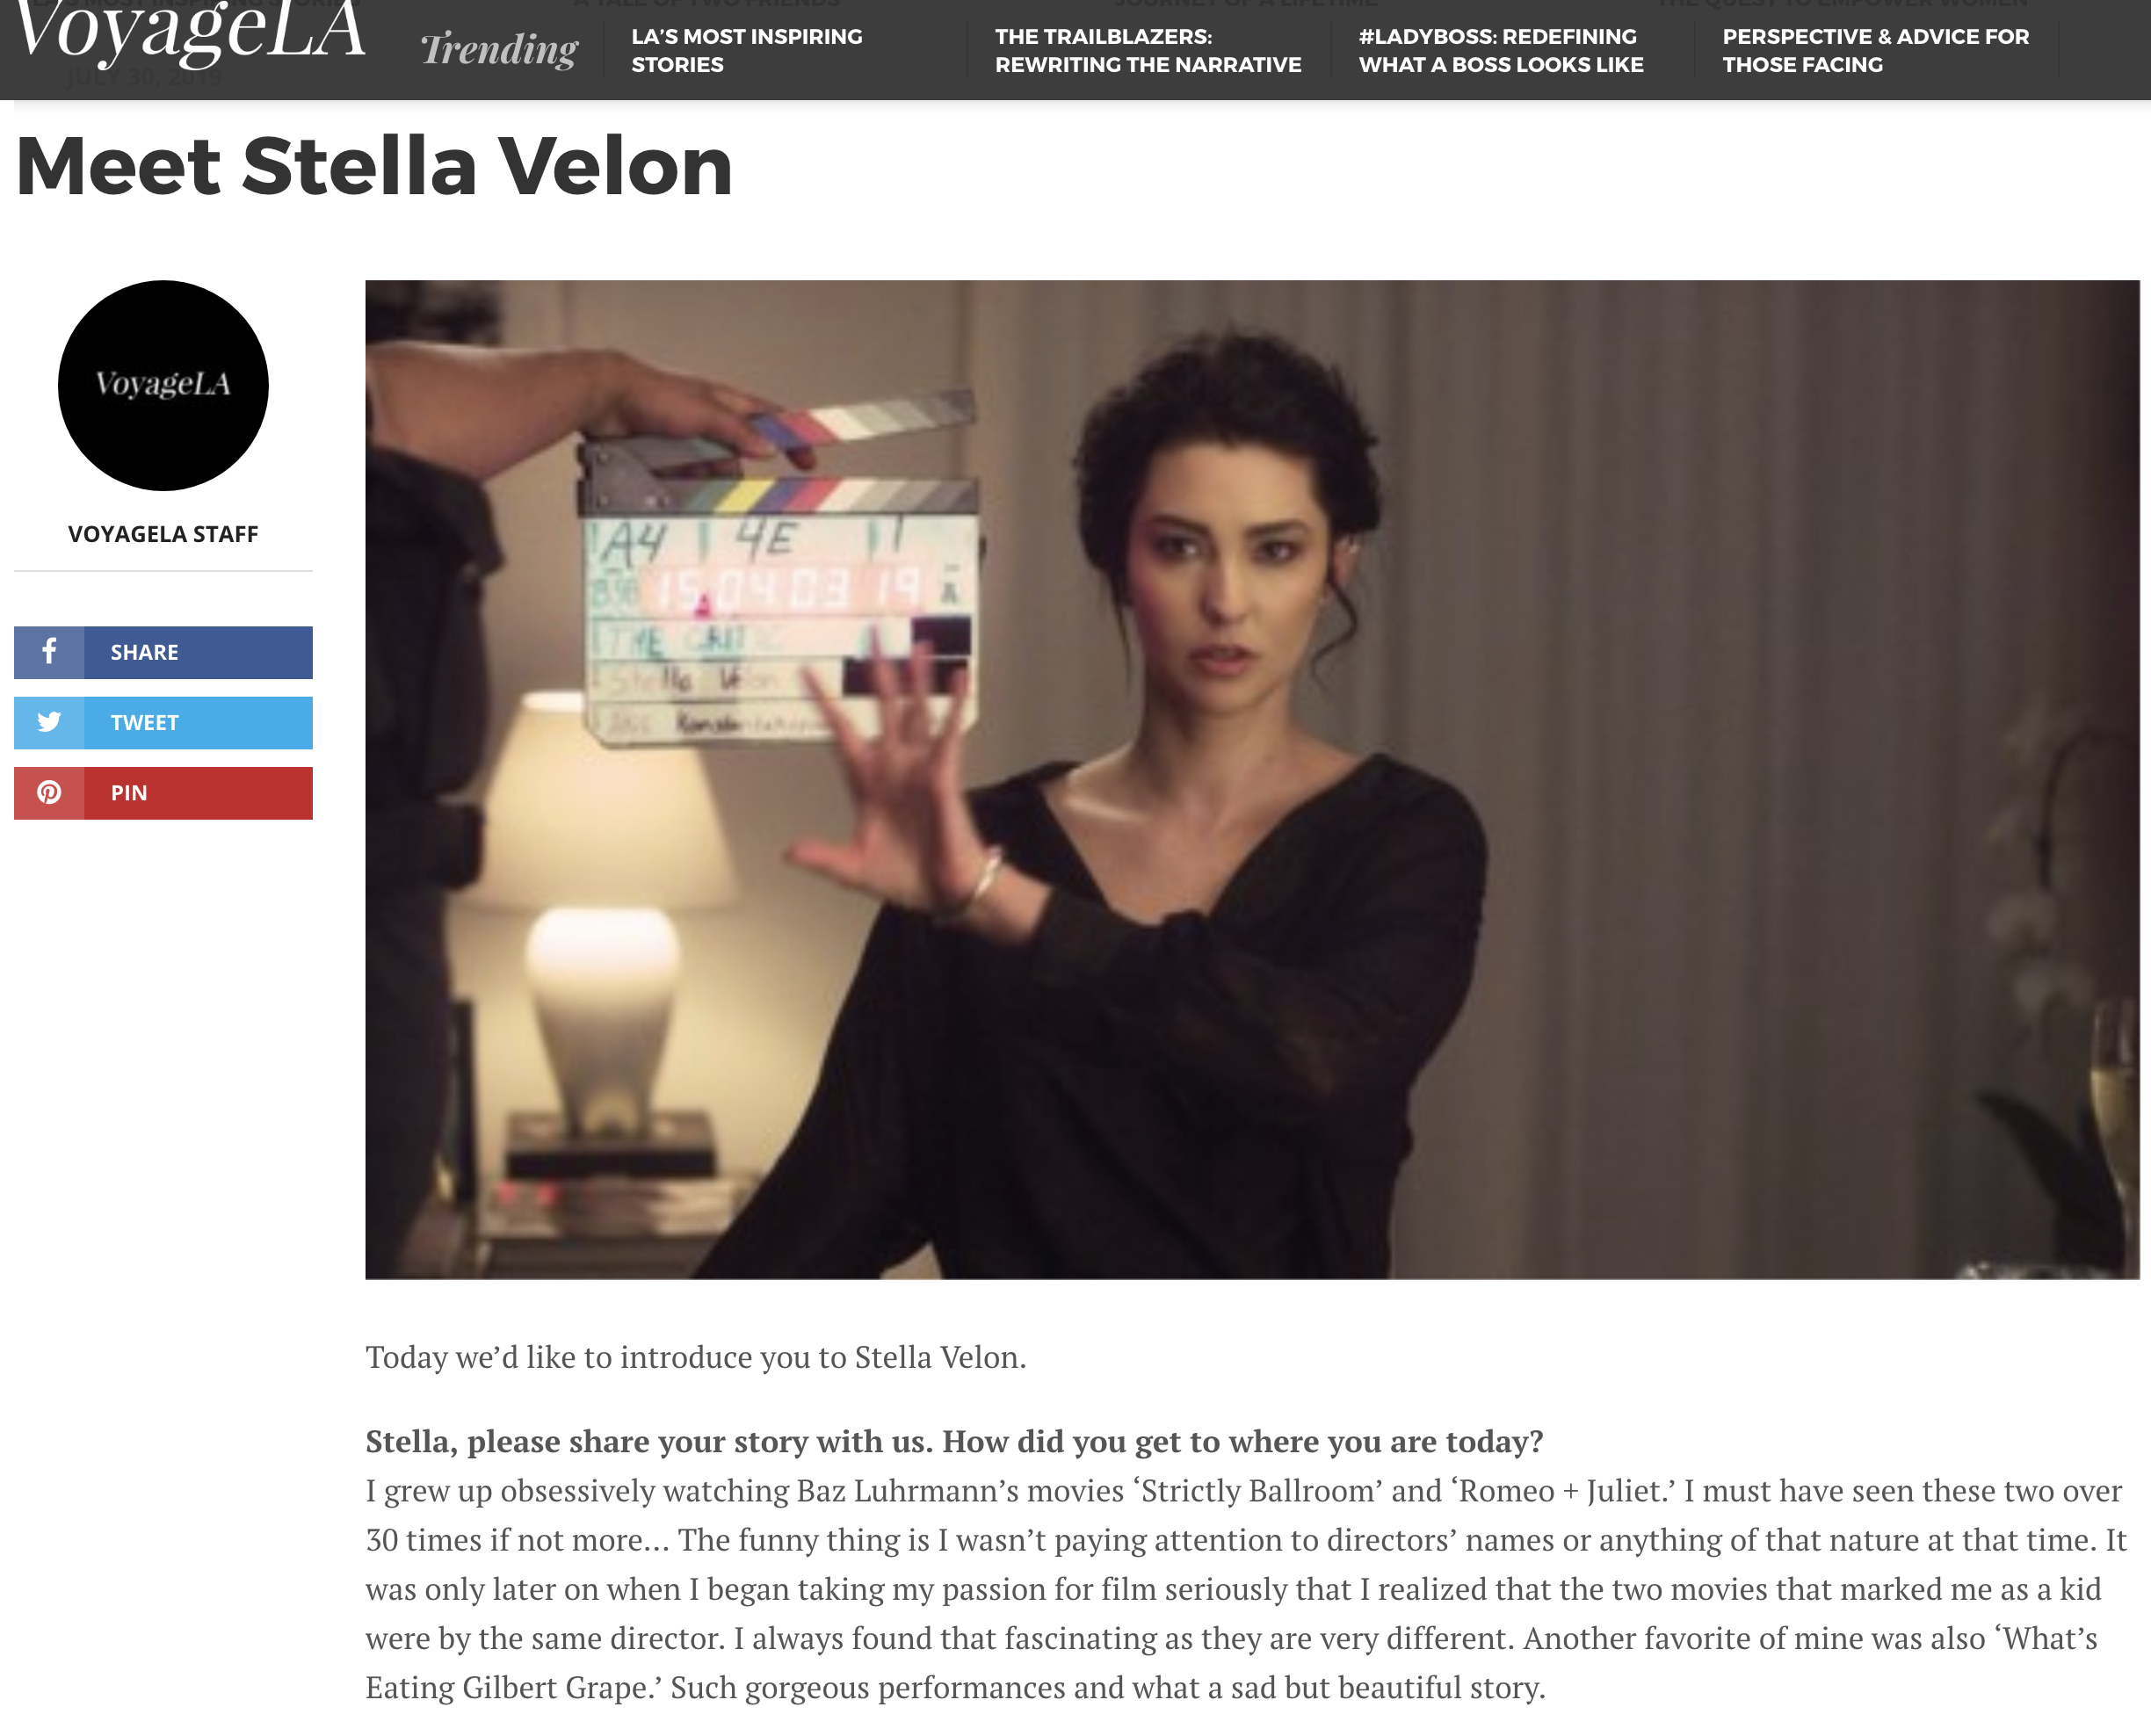 Read more:   voyagela.com/interview/meet-stella-velon-west-hollywood